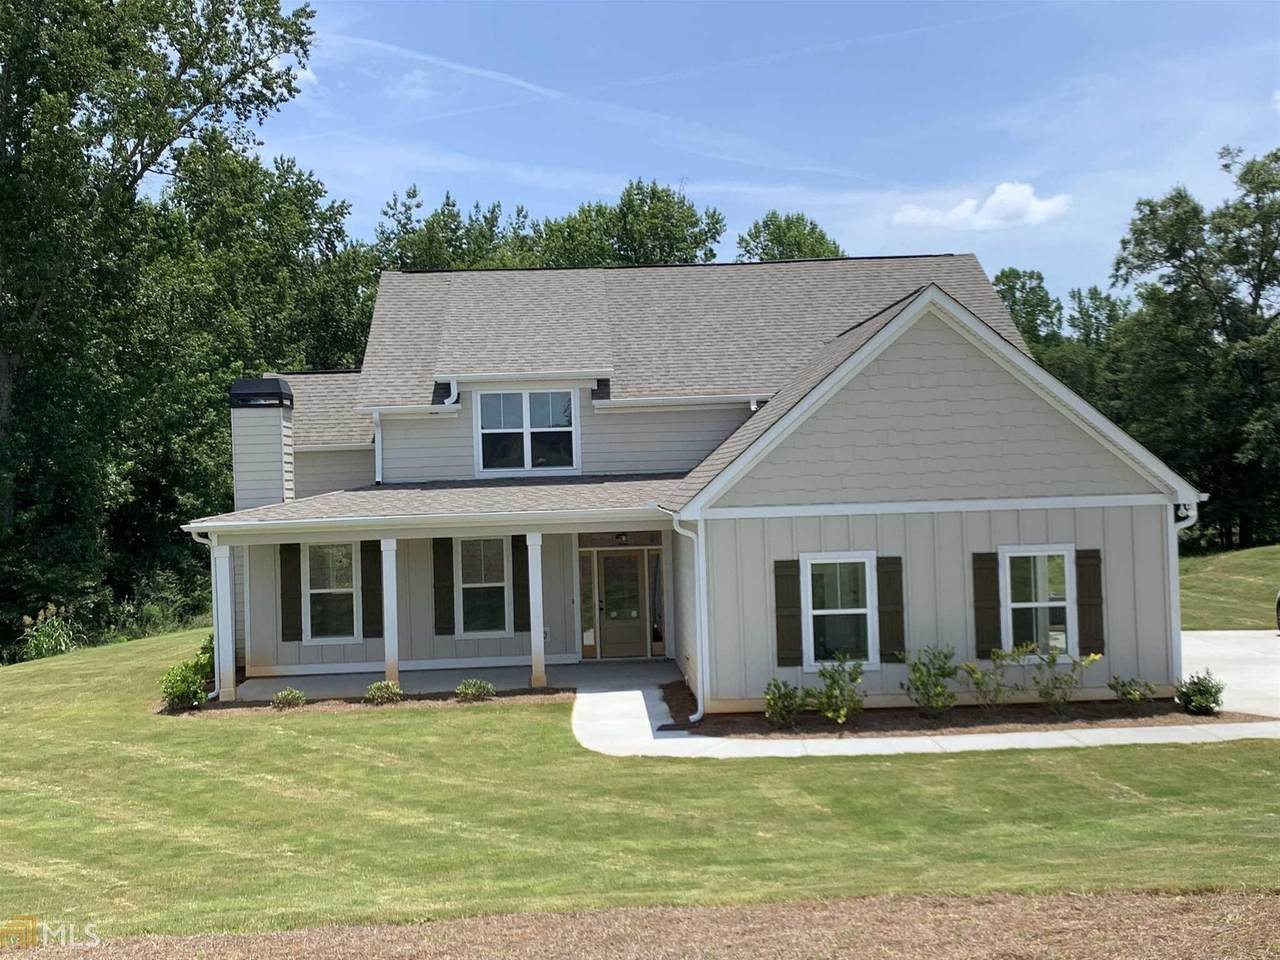 456 Linch Rd - Photo 1